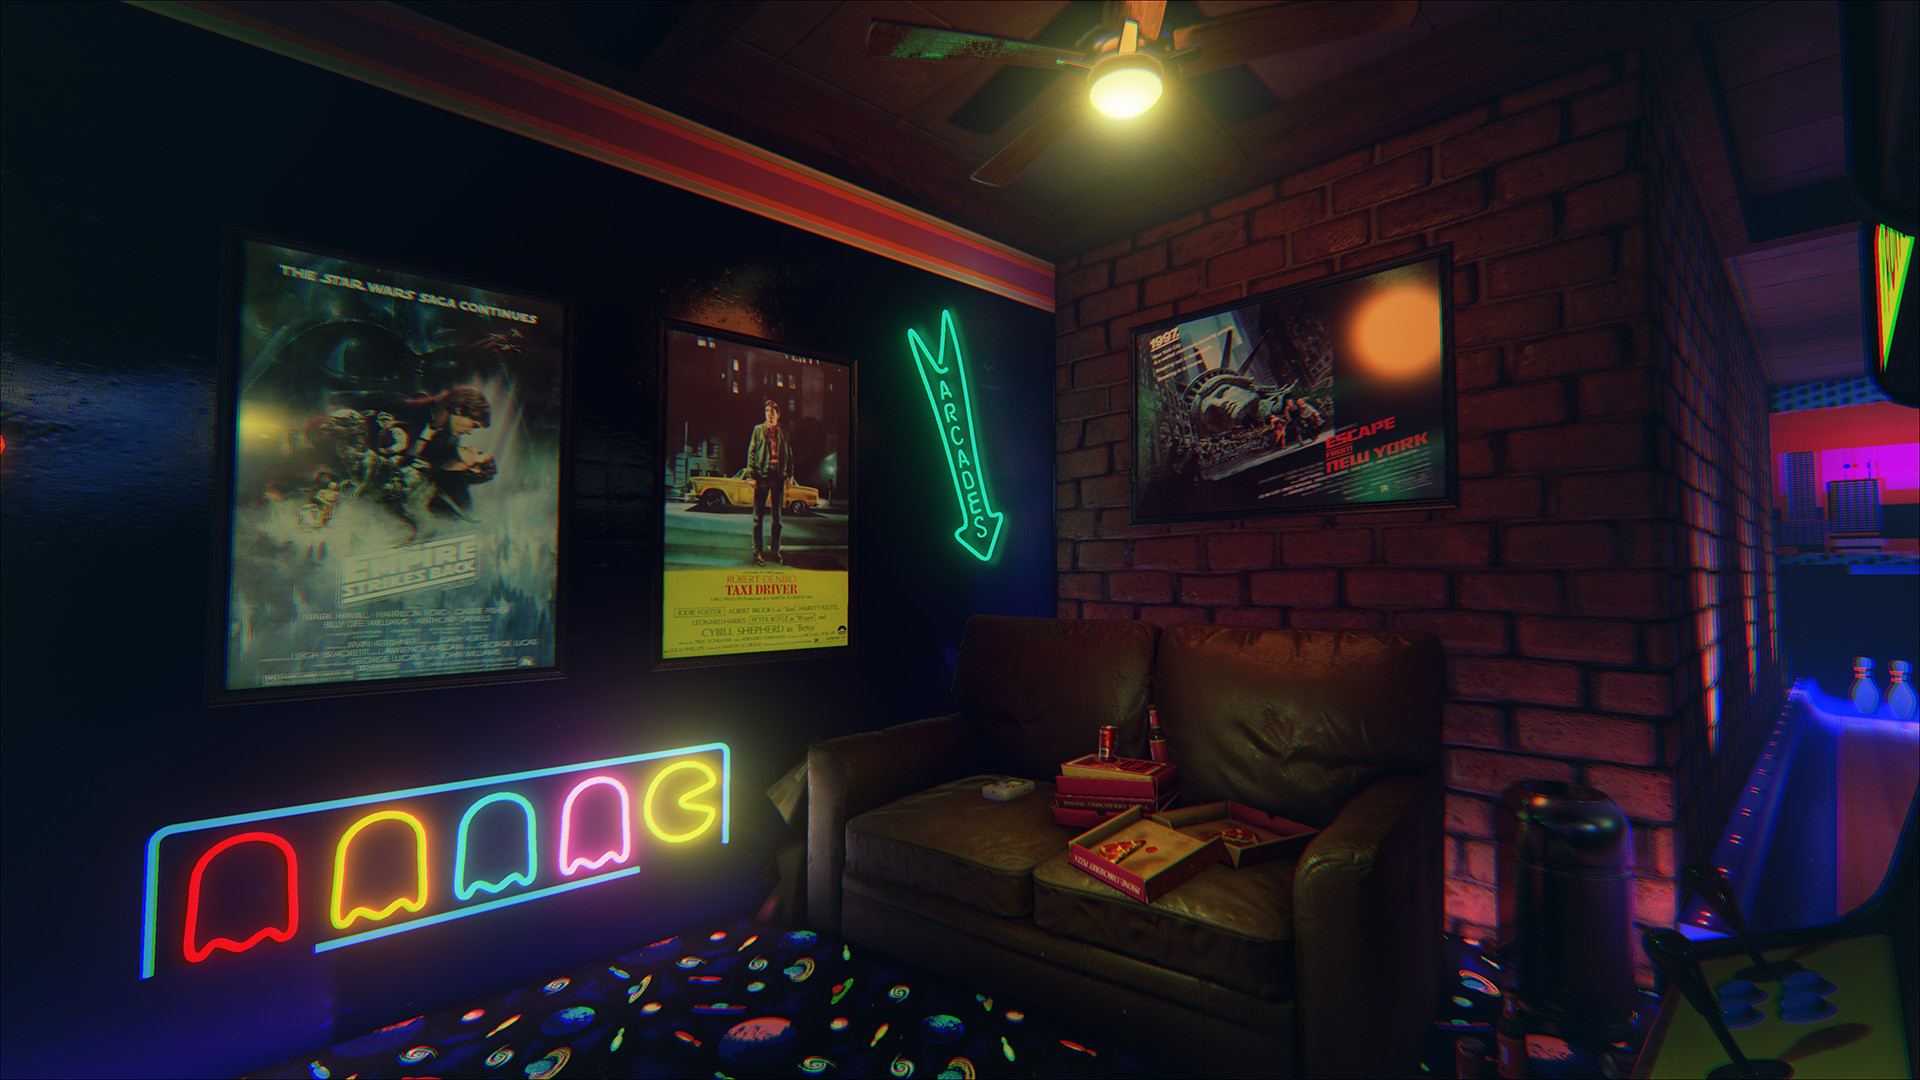 Res: 1920x1080, New Retro Arcade   STVRE   Oculus Rift DK2 Games List   Top VR Demos for  Oculus Rift, Virtual Reality Games and VR Apps Store